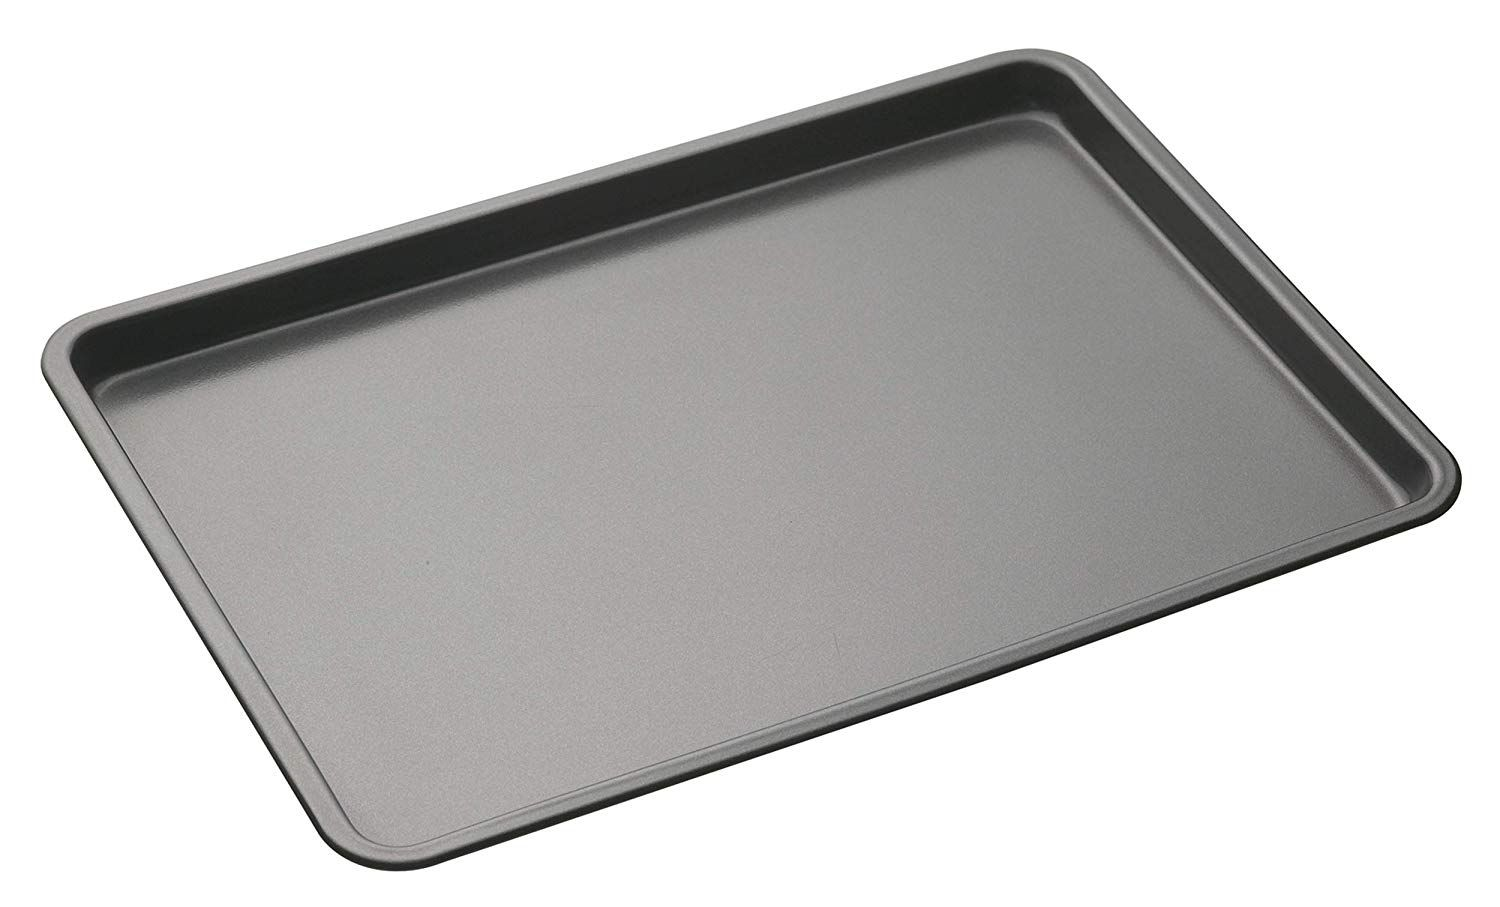 Masterclass Non Stick Baking Tray 35 X 25cm 14 X 10 You Can Get More Details By Clicking On The Image Thi Baking Pans Kitchen Crafts Baking Equipment